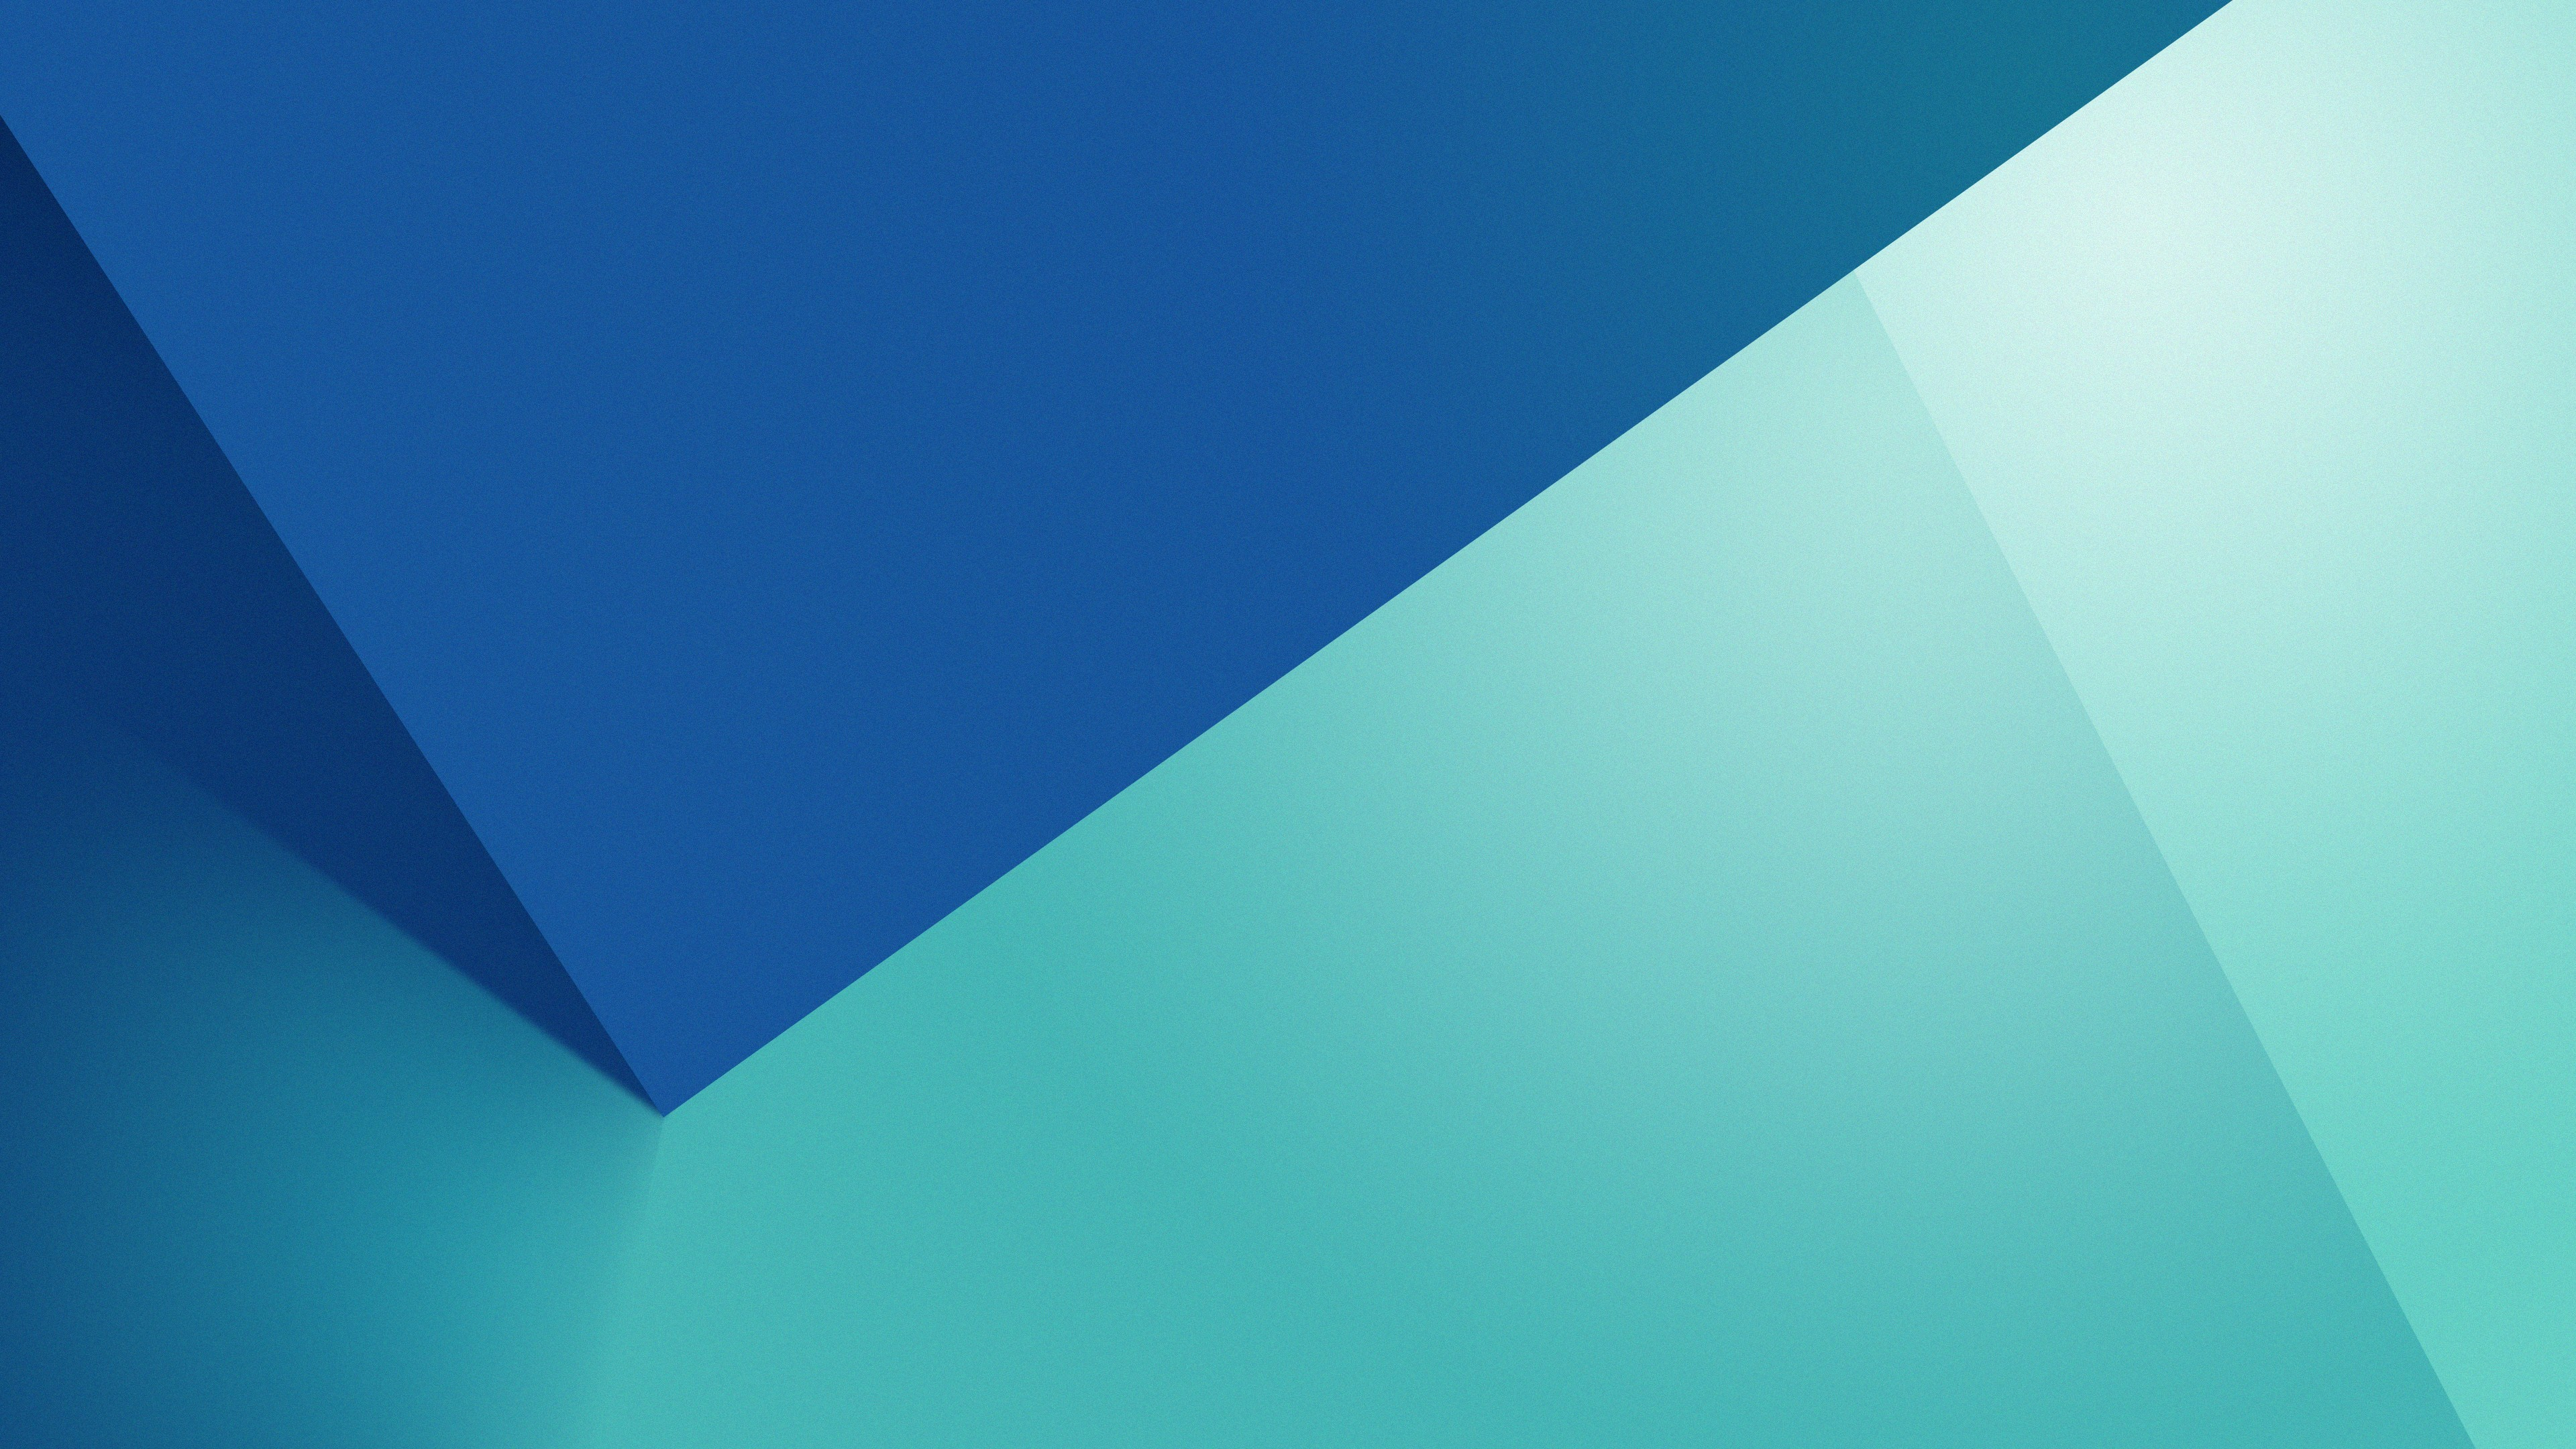 Material Design Wallpapers (80+ background pictures)